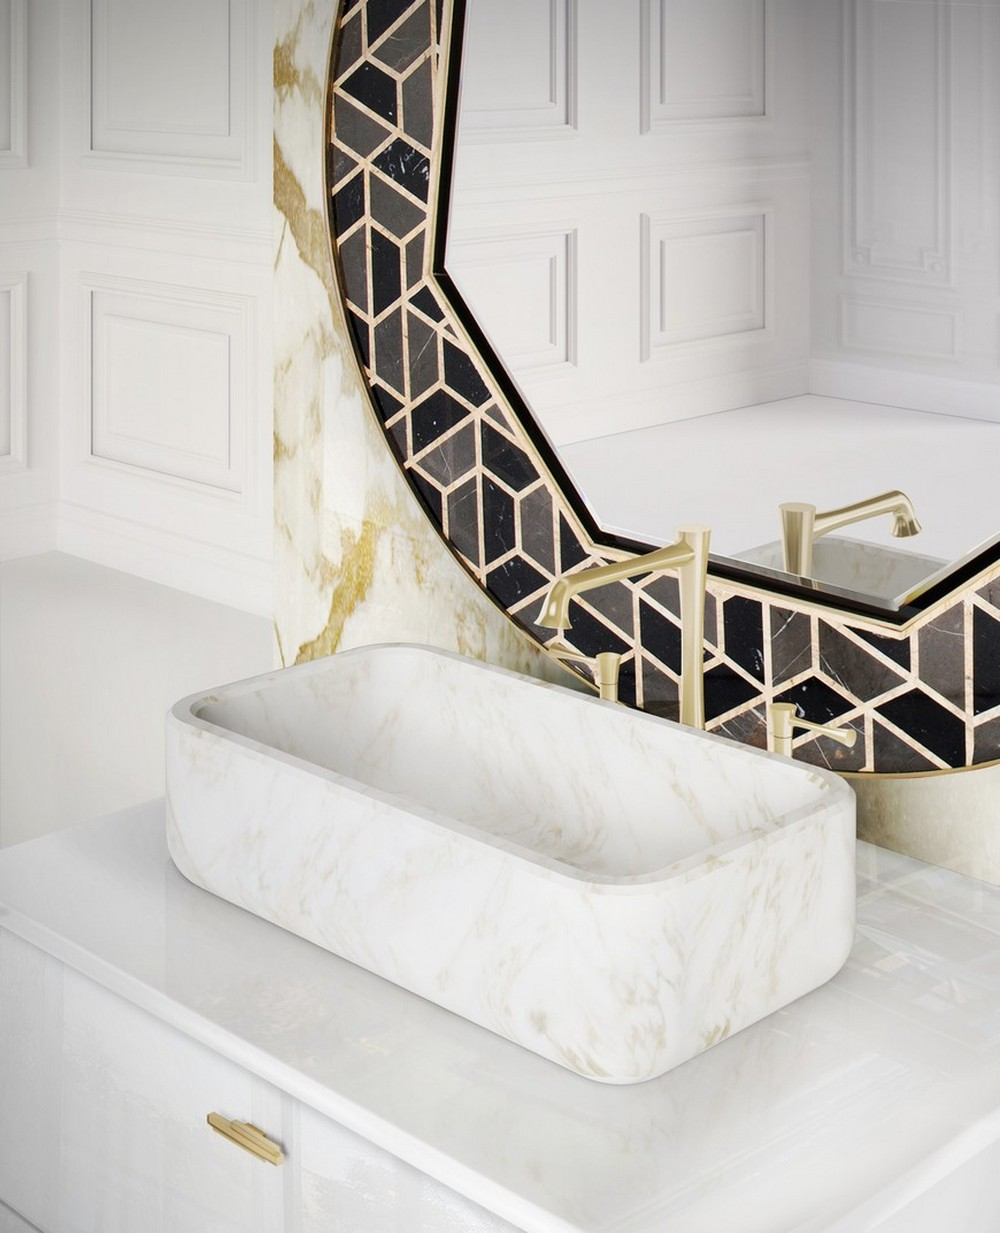 The Ultimate Design Trend For A Perfect Luxury Bathroom Design luxury bathroom design The Ultimate Design Trend For A Perfect Luxury Bathroom Design The Ultimate Design Trend For A Perfect Luxury Bathroom Design 4